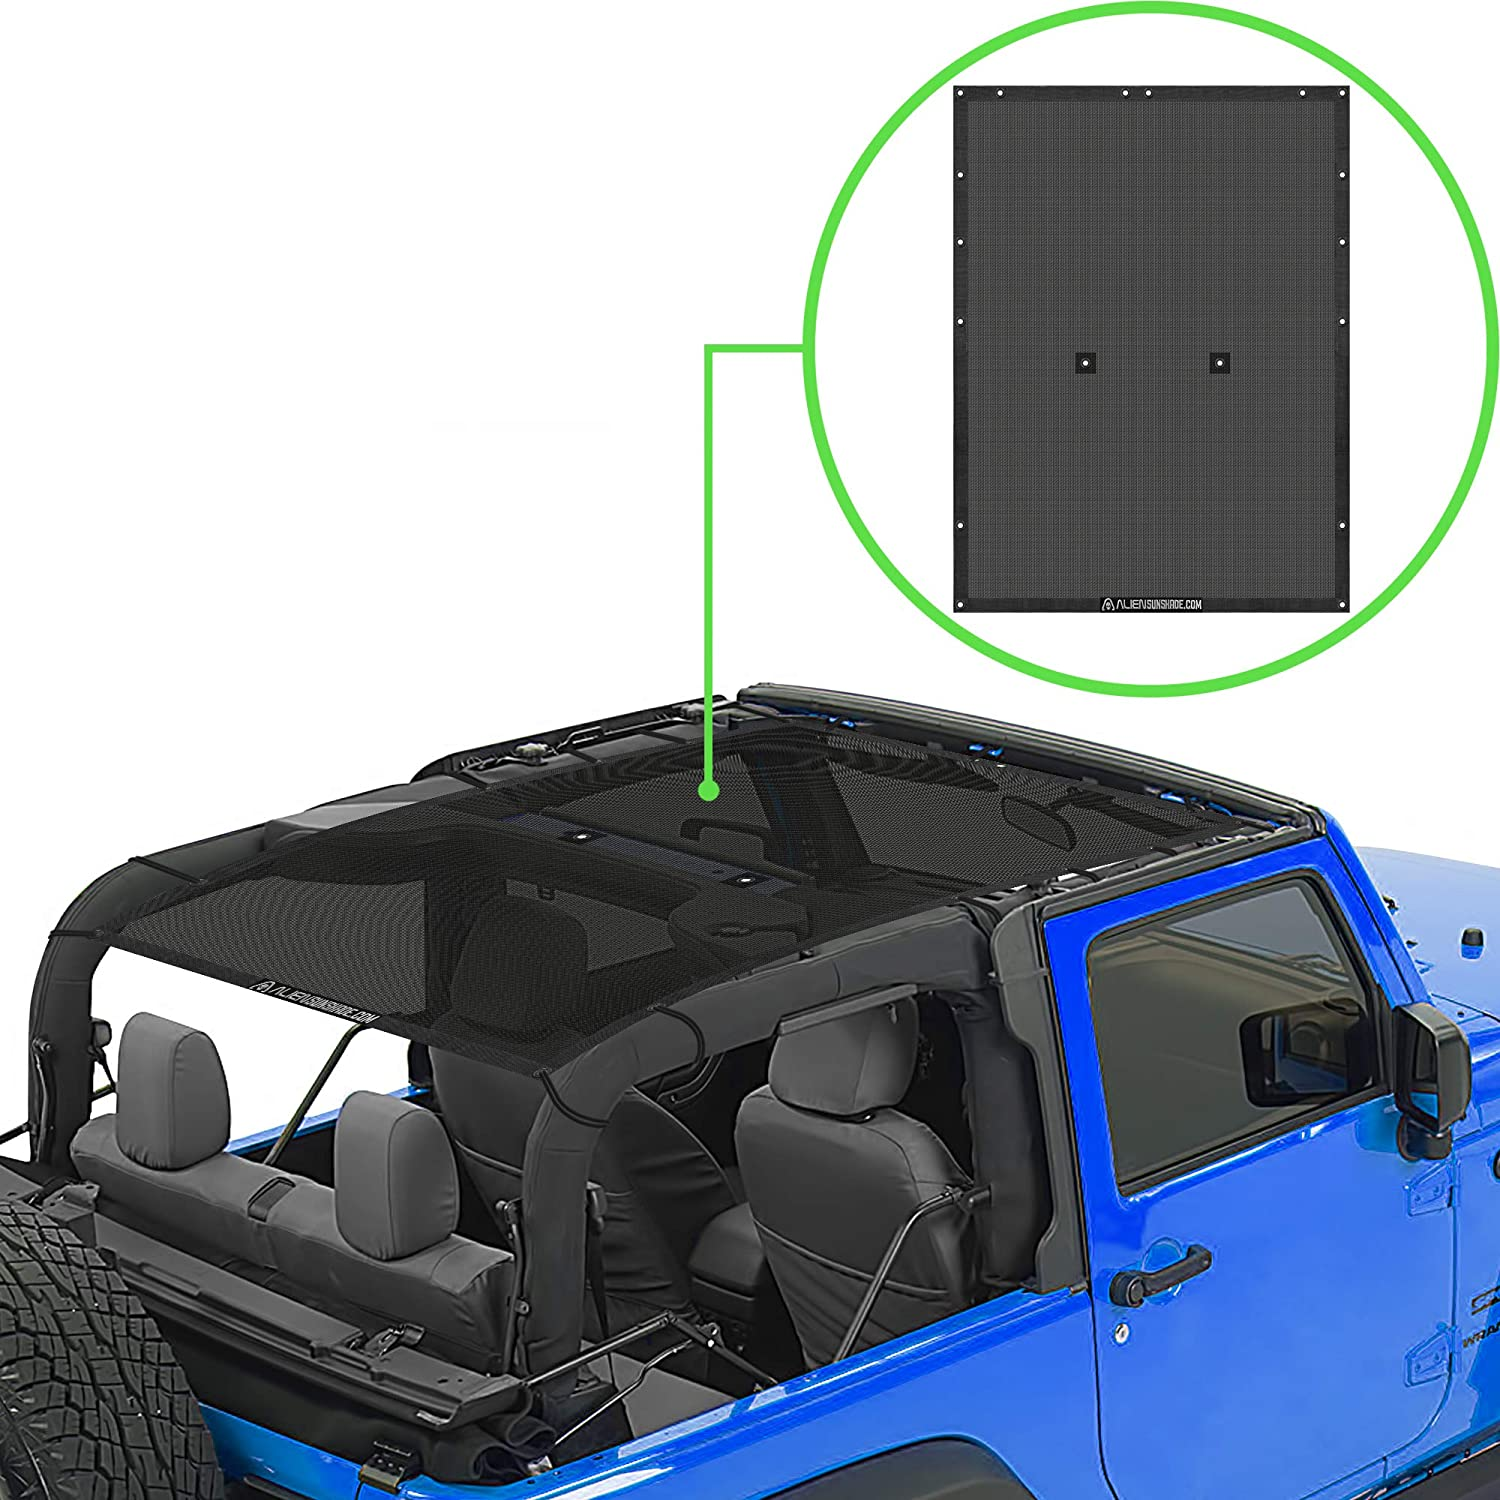 in Black 2007-2018 SPIDERWEBSHADE Jeep Wrangler Mesh Shade Top Sunshade UV Protection Accessory USA Made for Your JK 2-Door